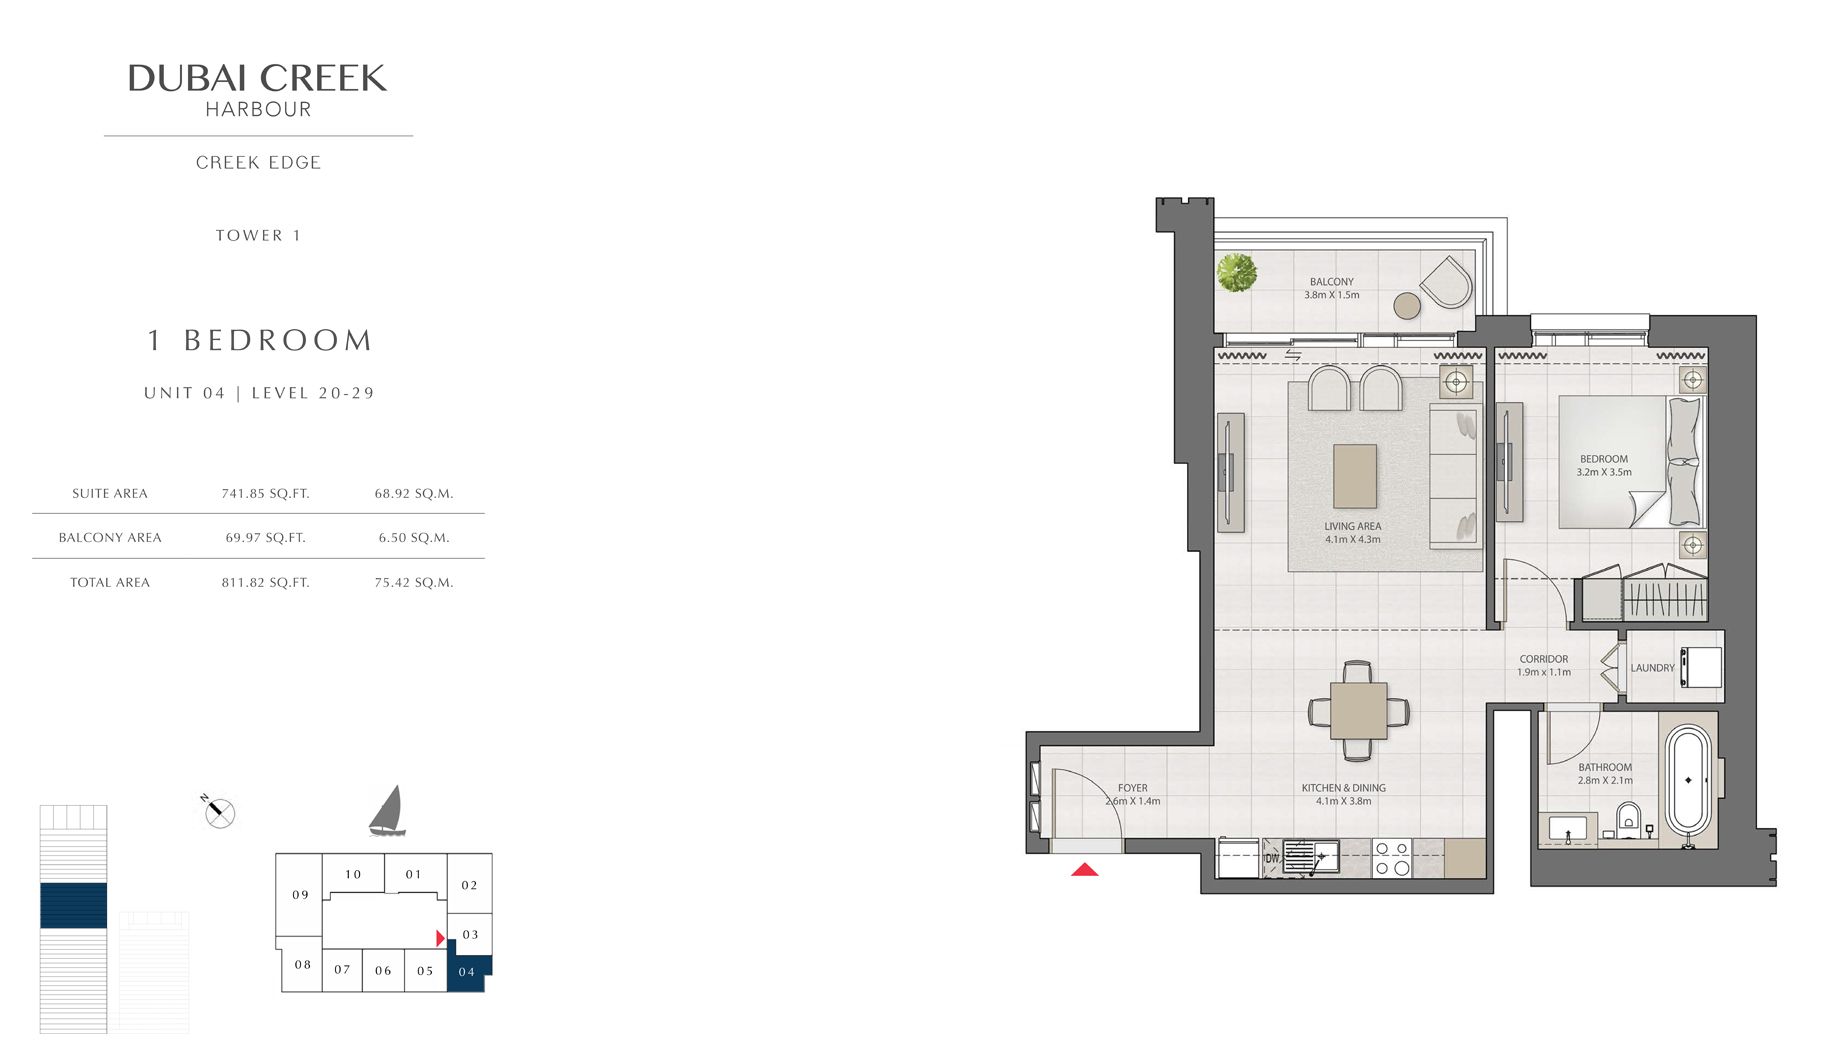 1 Bedroom Tower 1 Unit 04 Level 20-29  Size 811 sq.ft